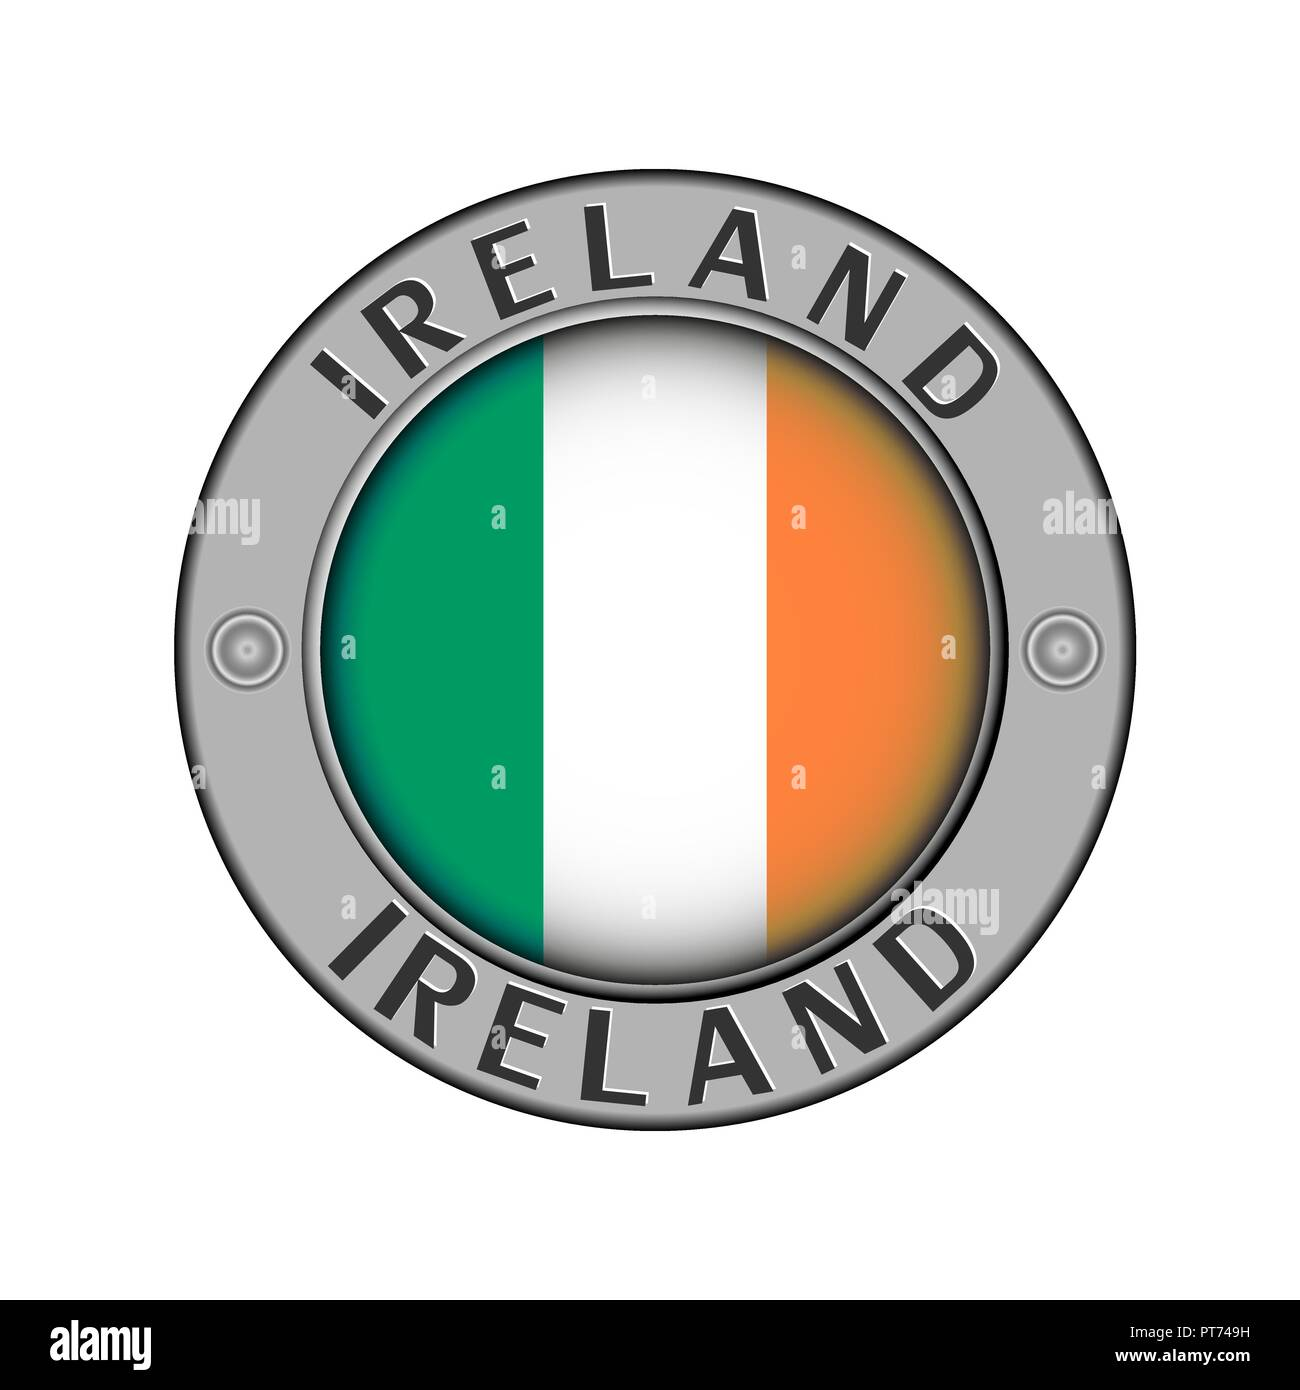 Image result for Ireland name